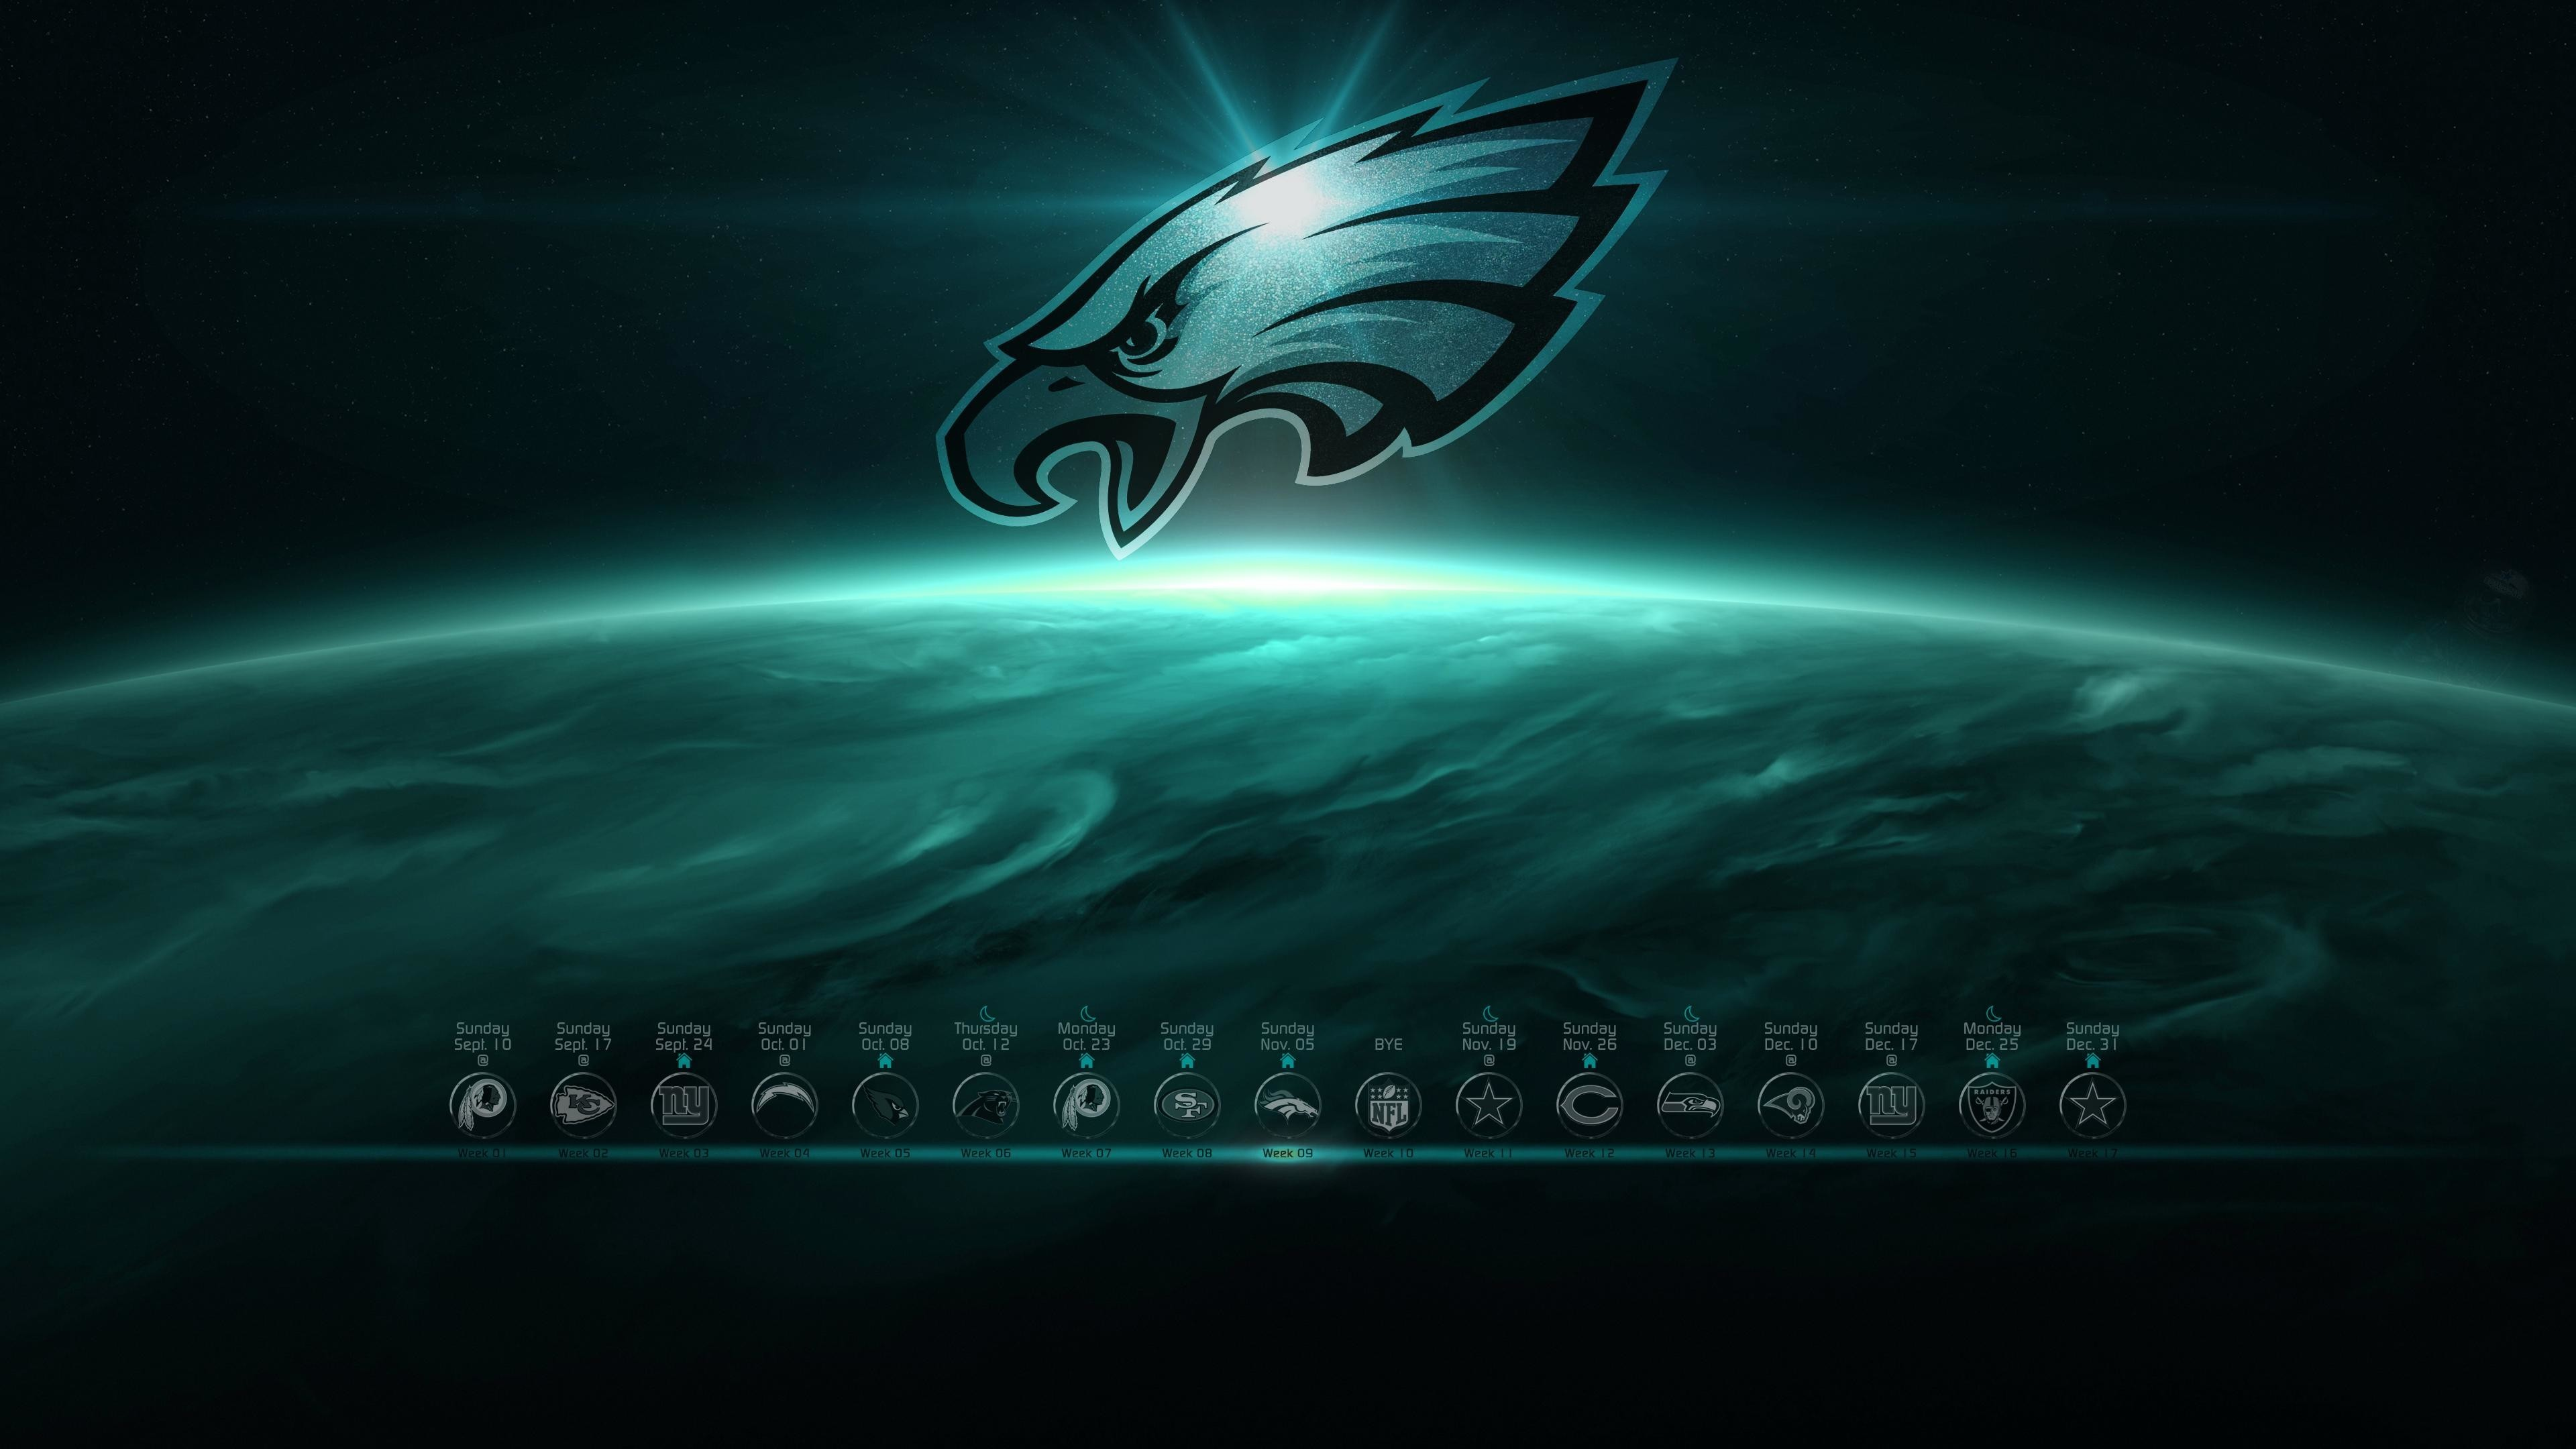 3840x2160 1920x1080 Hd Brand Wallpaper Wallpaper Gallery